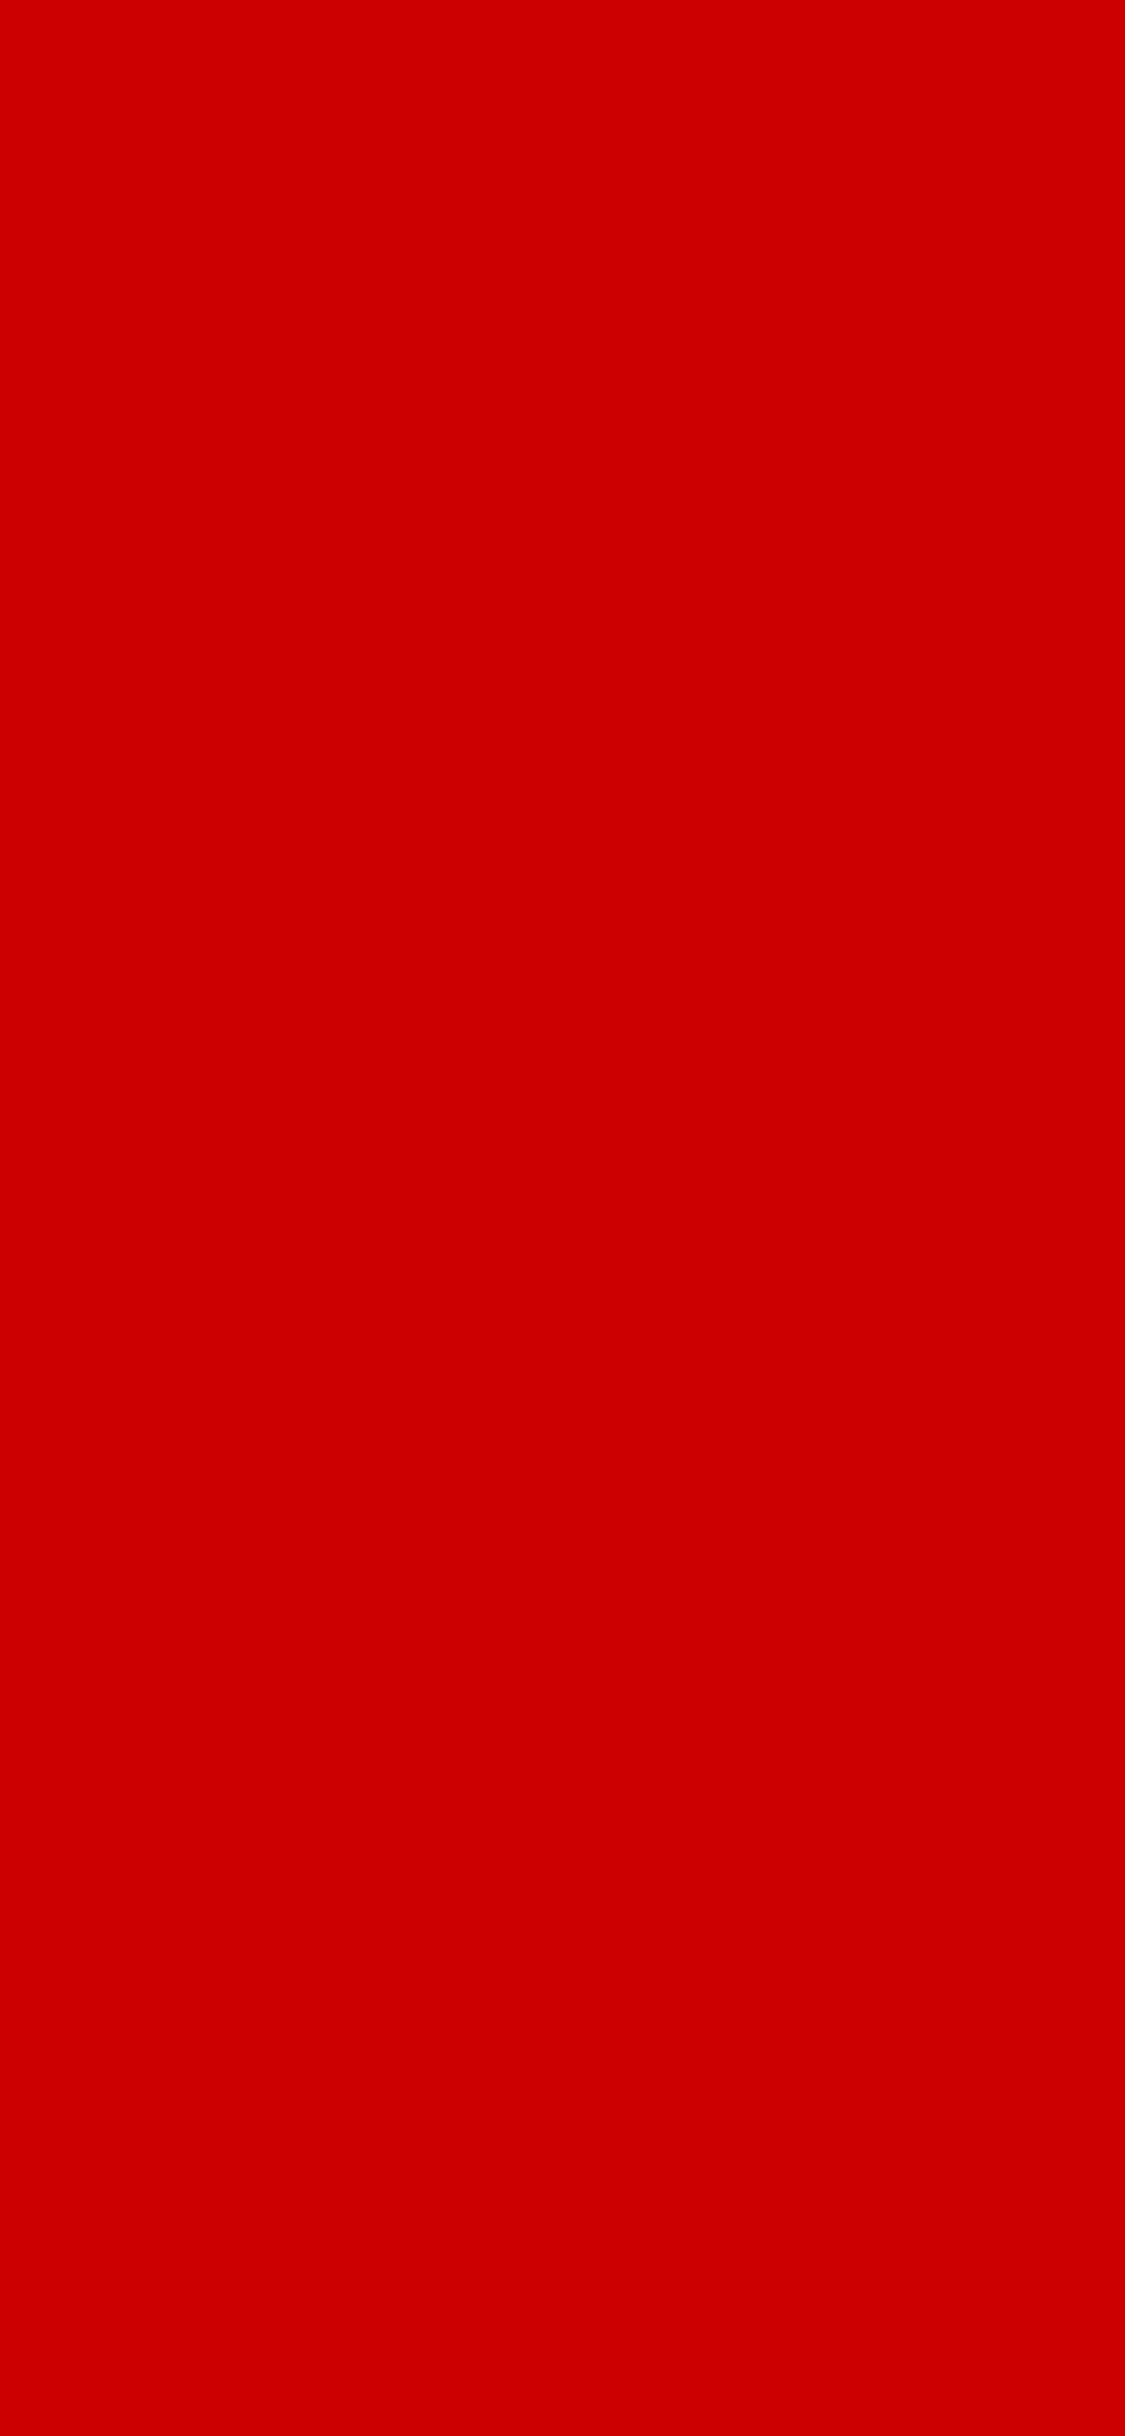 1125x2436 Boston University Red Solid Color Background